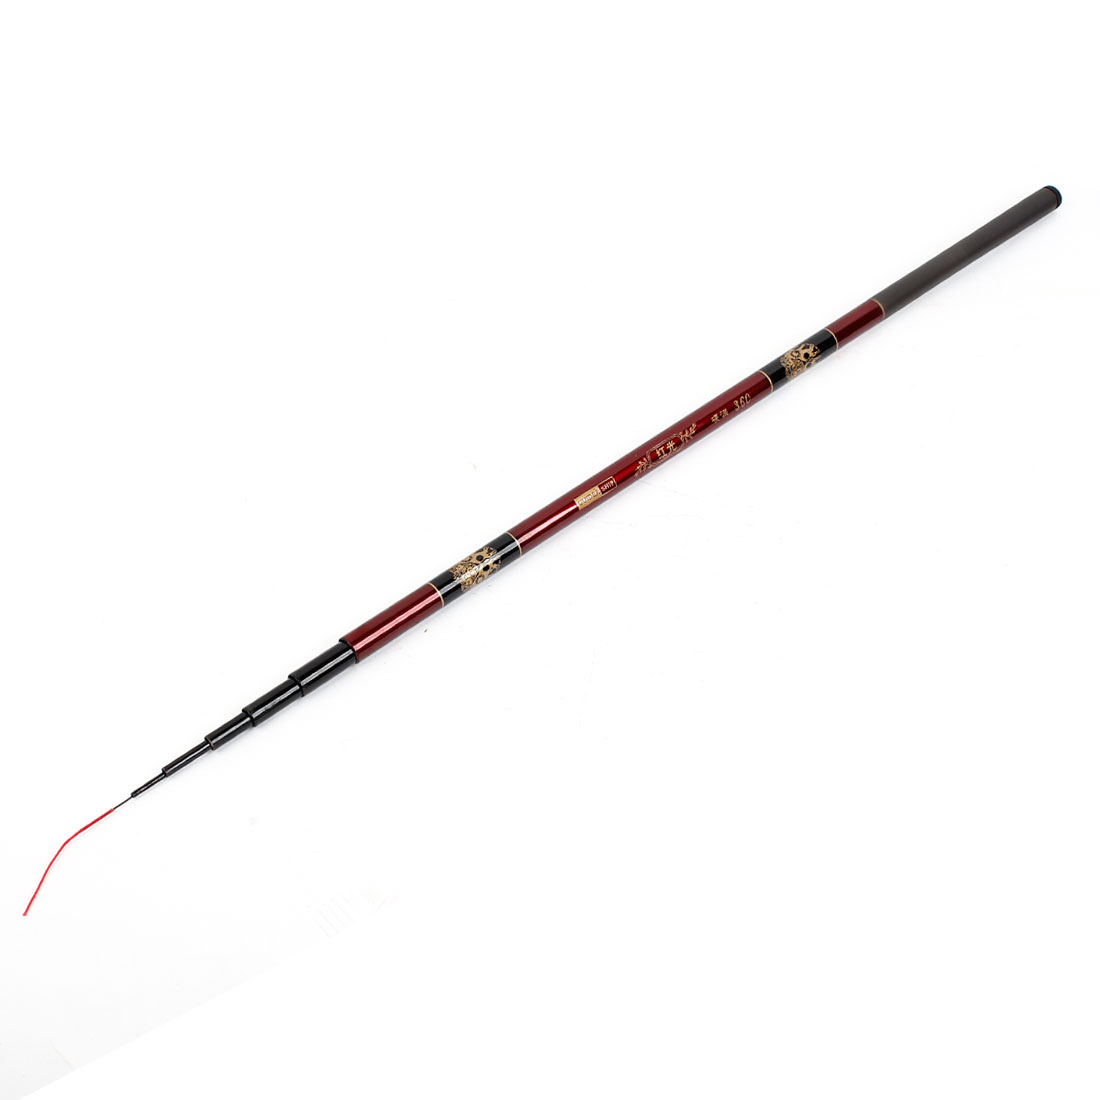 Burgundy Black 3.6M 7 Sections Telescopic Fishing Pole for Fisherman